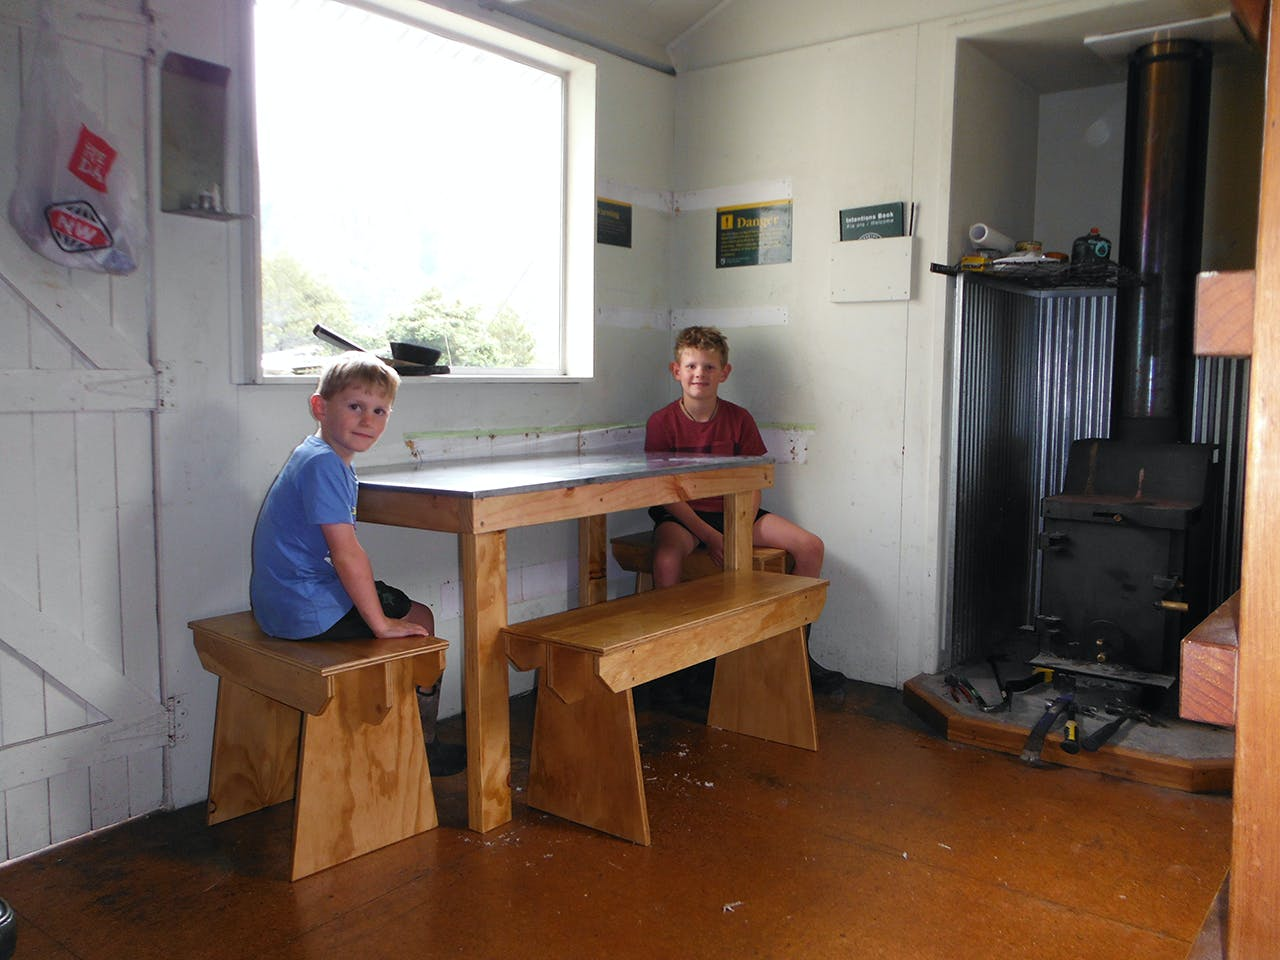 Enjoying the fruits of their labour - a seat at the hut's new bench. Photo: Supplied